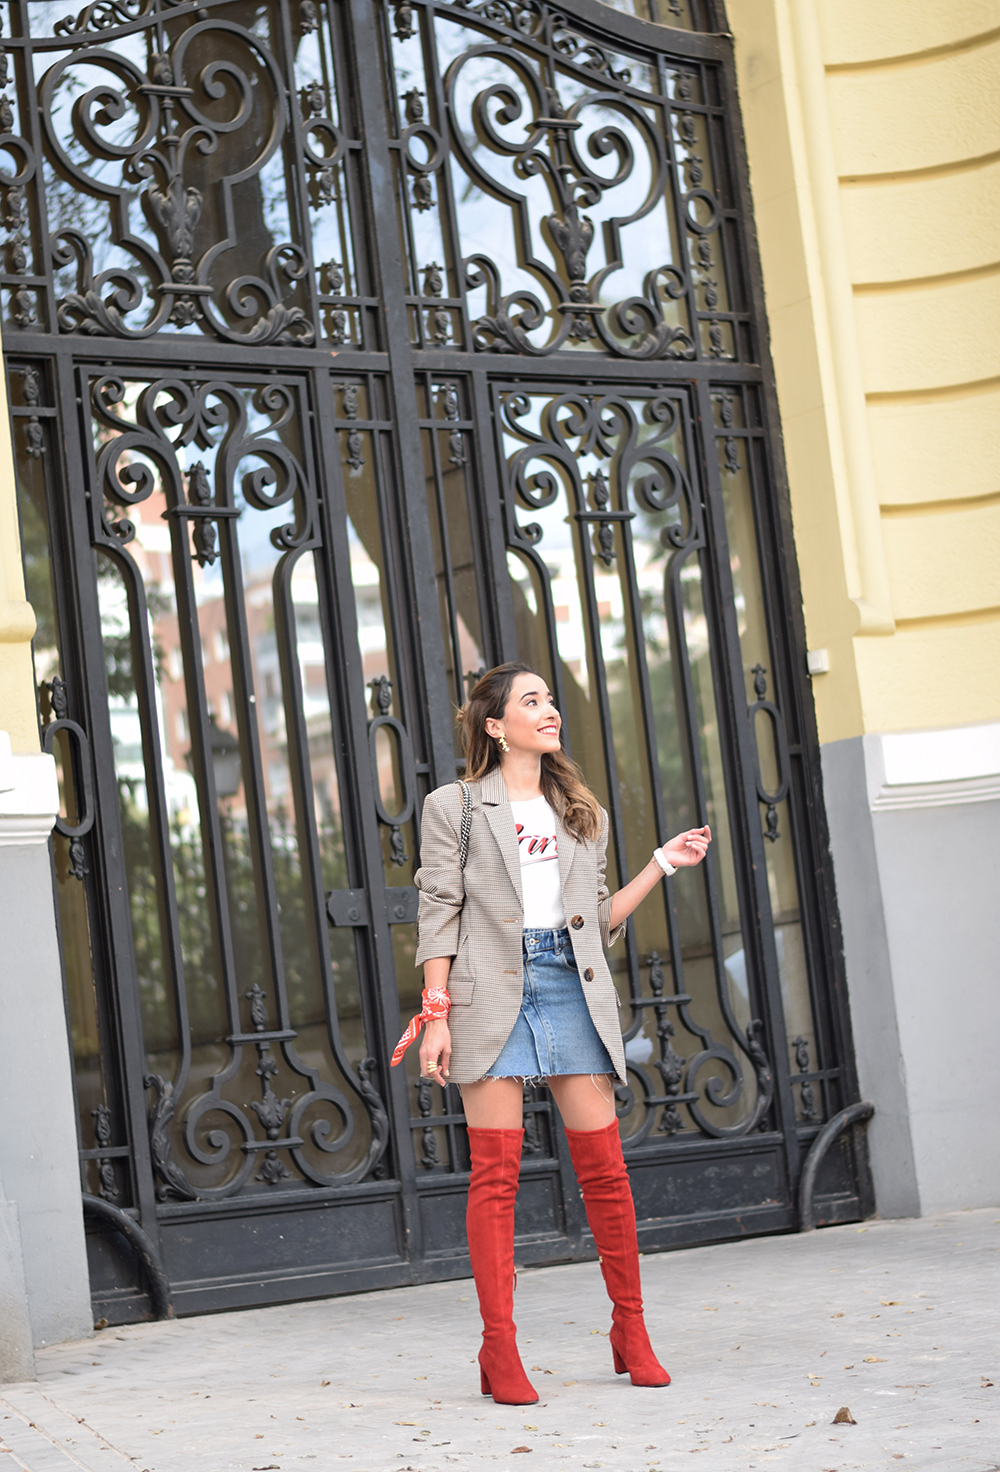 Houndstooth blazer denim skirt gucci bag red over the knee boots autumn outfit style fashion08